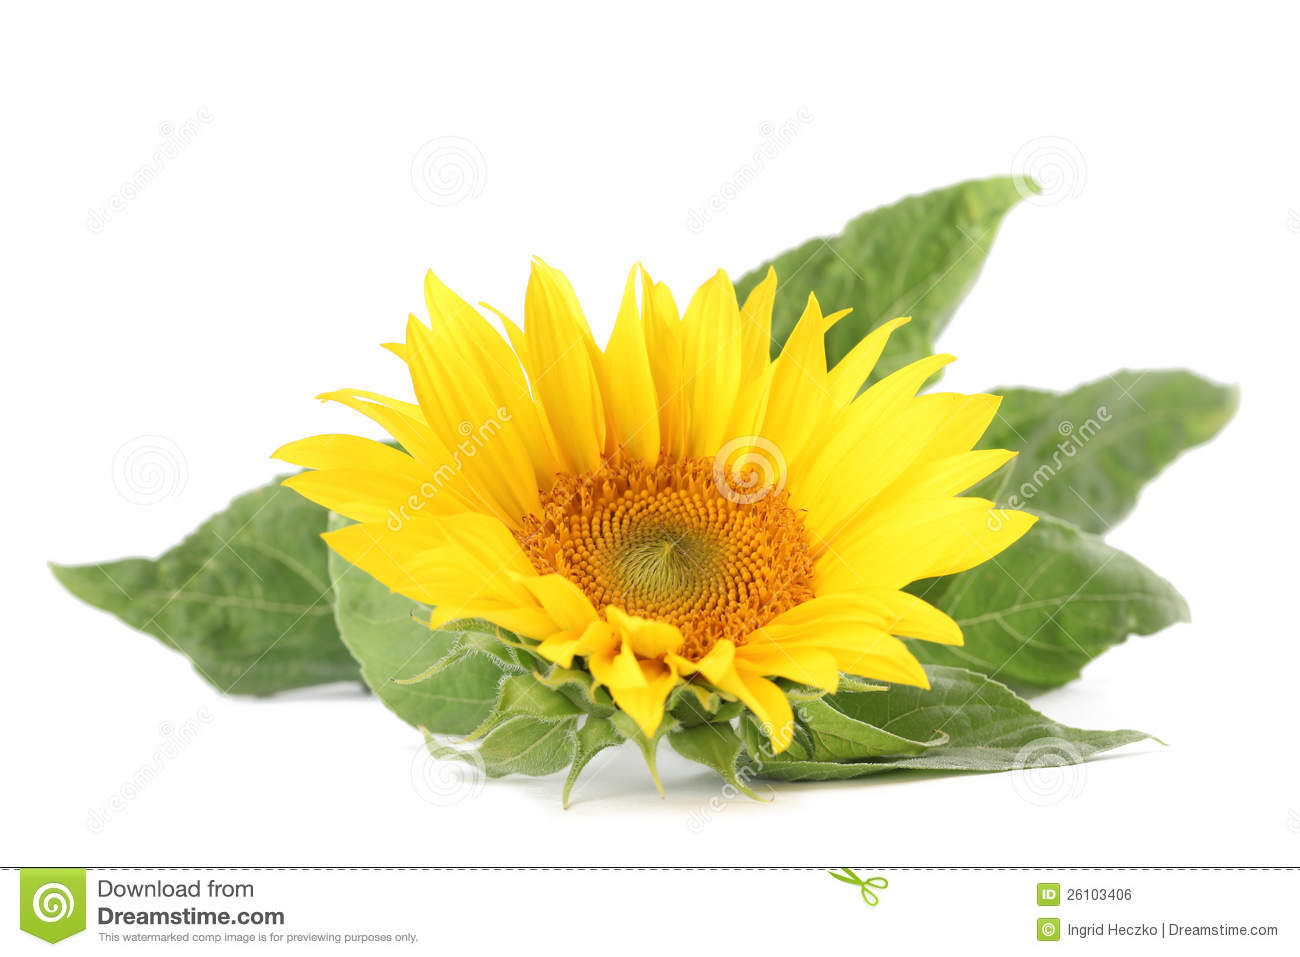 Sunflower business plan